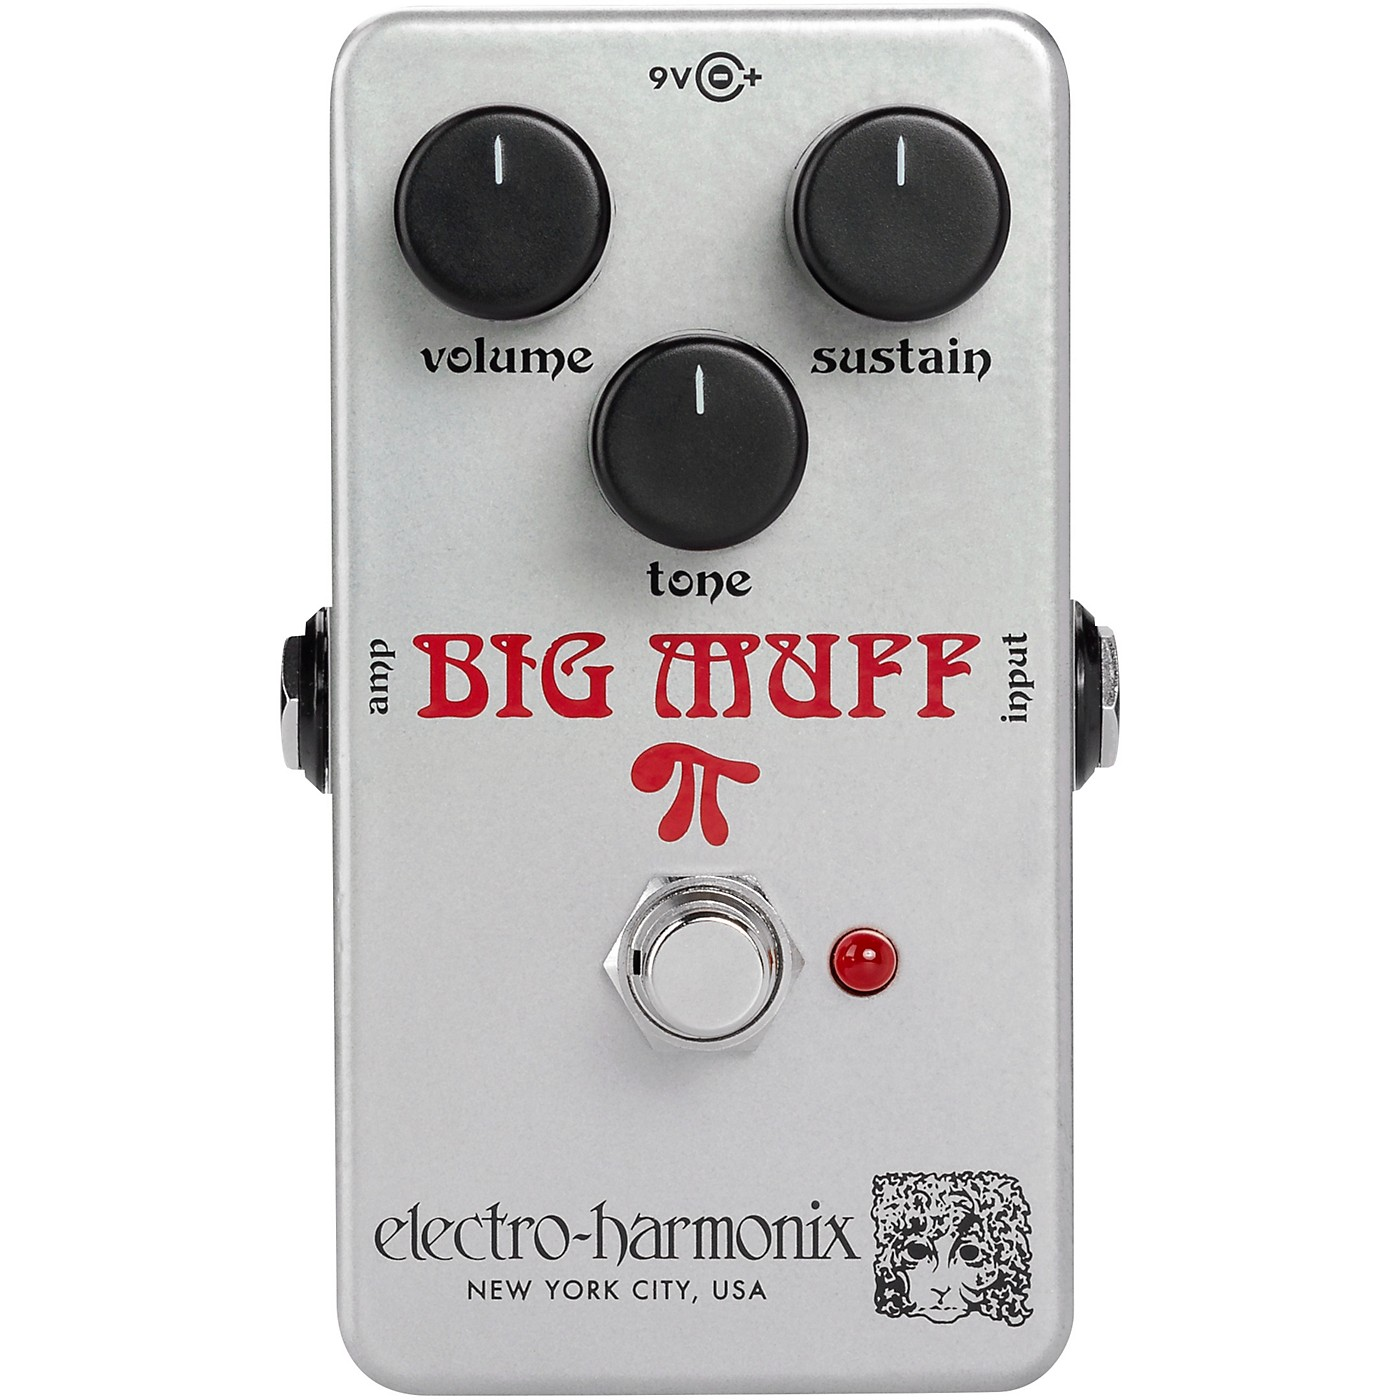 Electro-Harmonix Ram's Head Big Muff Pi Distortion/Sustainer Effects Pedal thumbnail